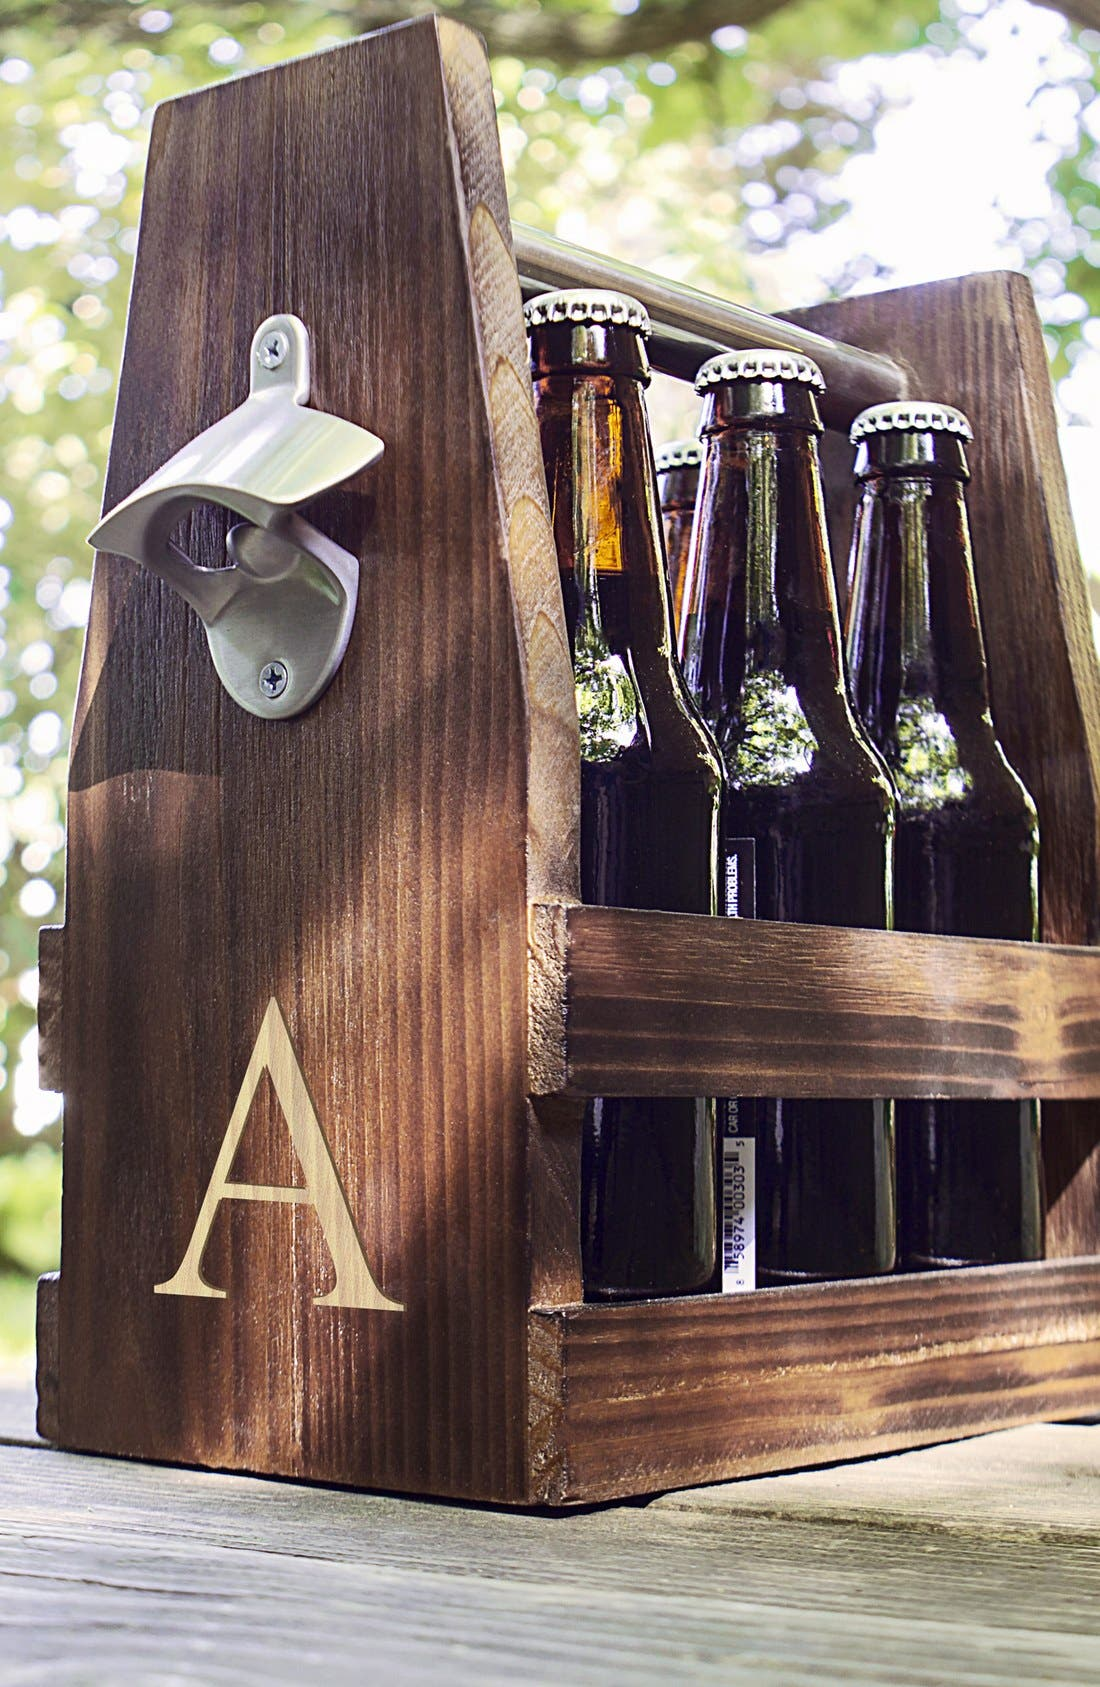 Monogram Craft Beer Carrier,                             Main thumbnail 1, color,                             201